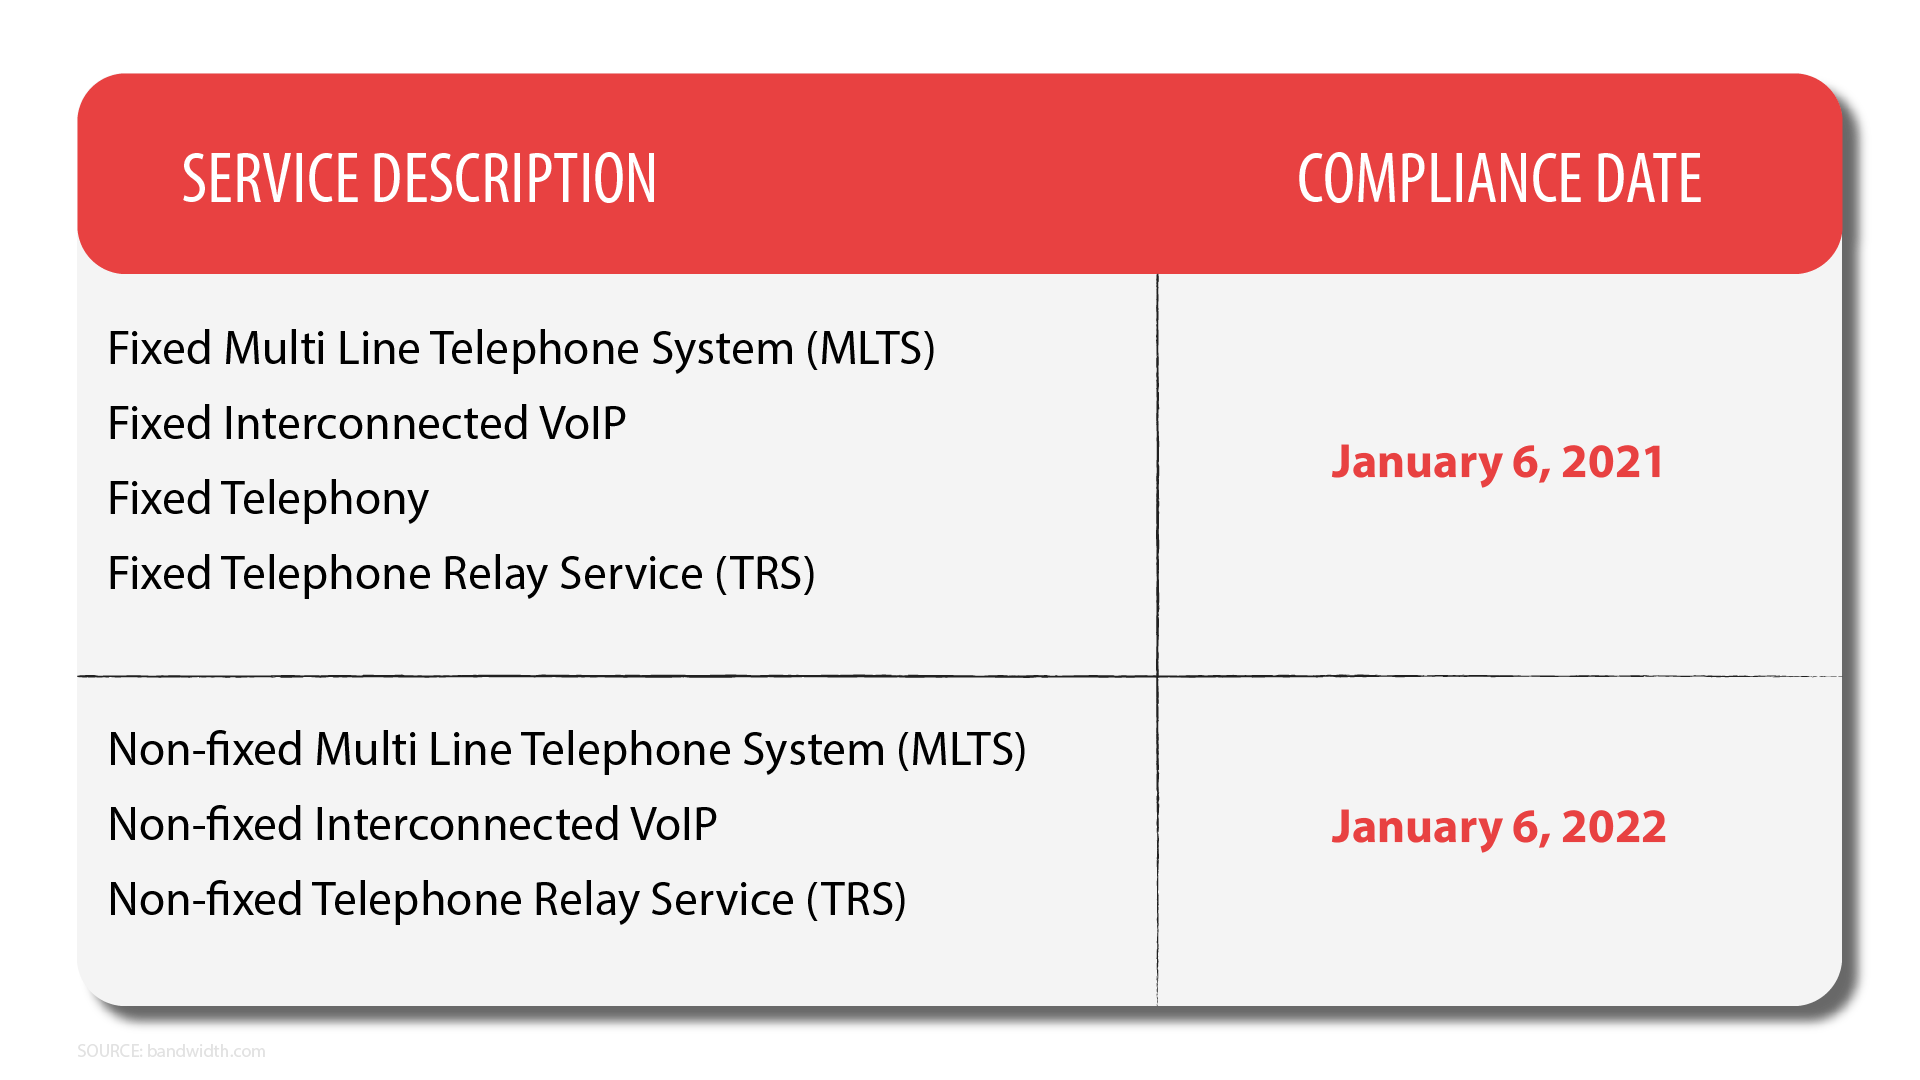 detailed list of ray baum's compliance dates for different service types